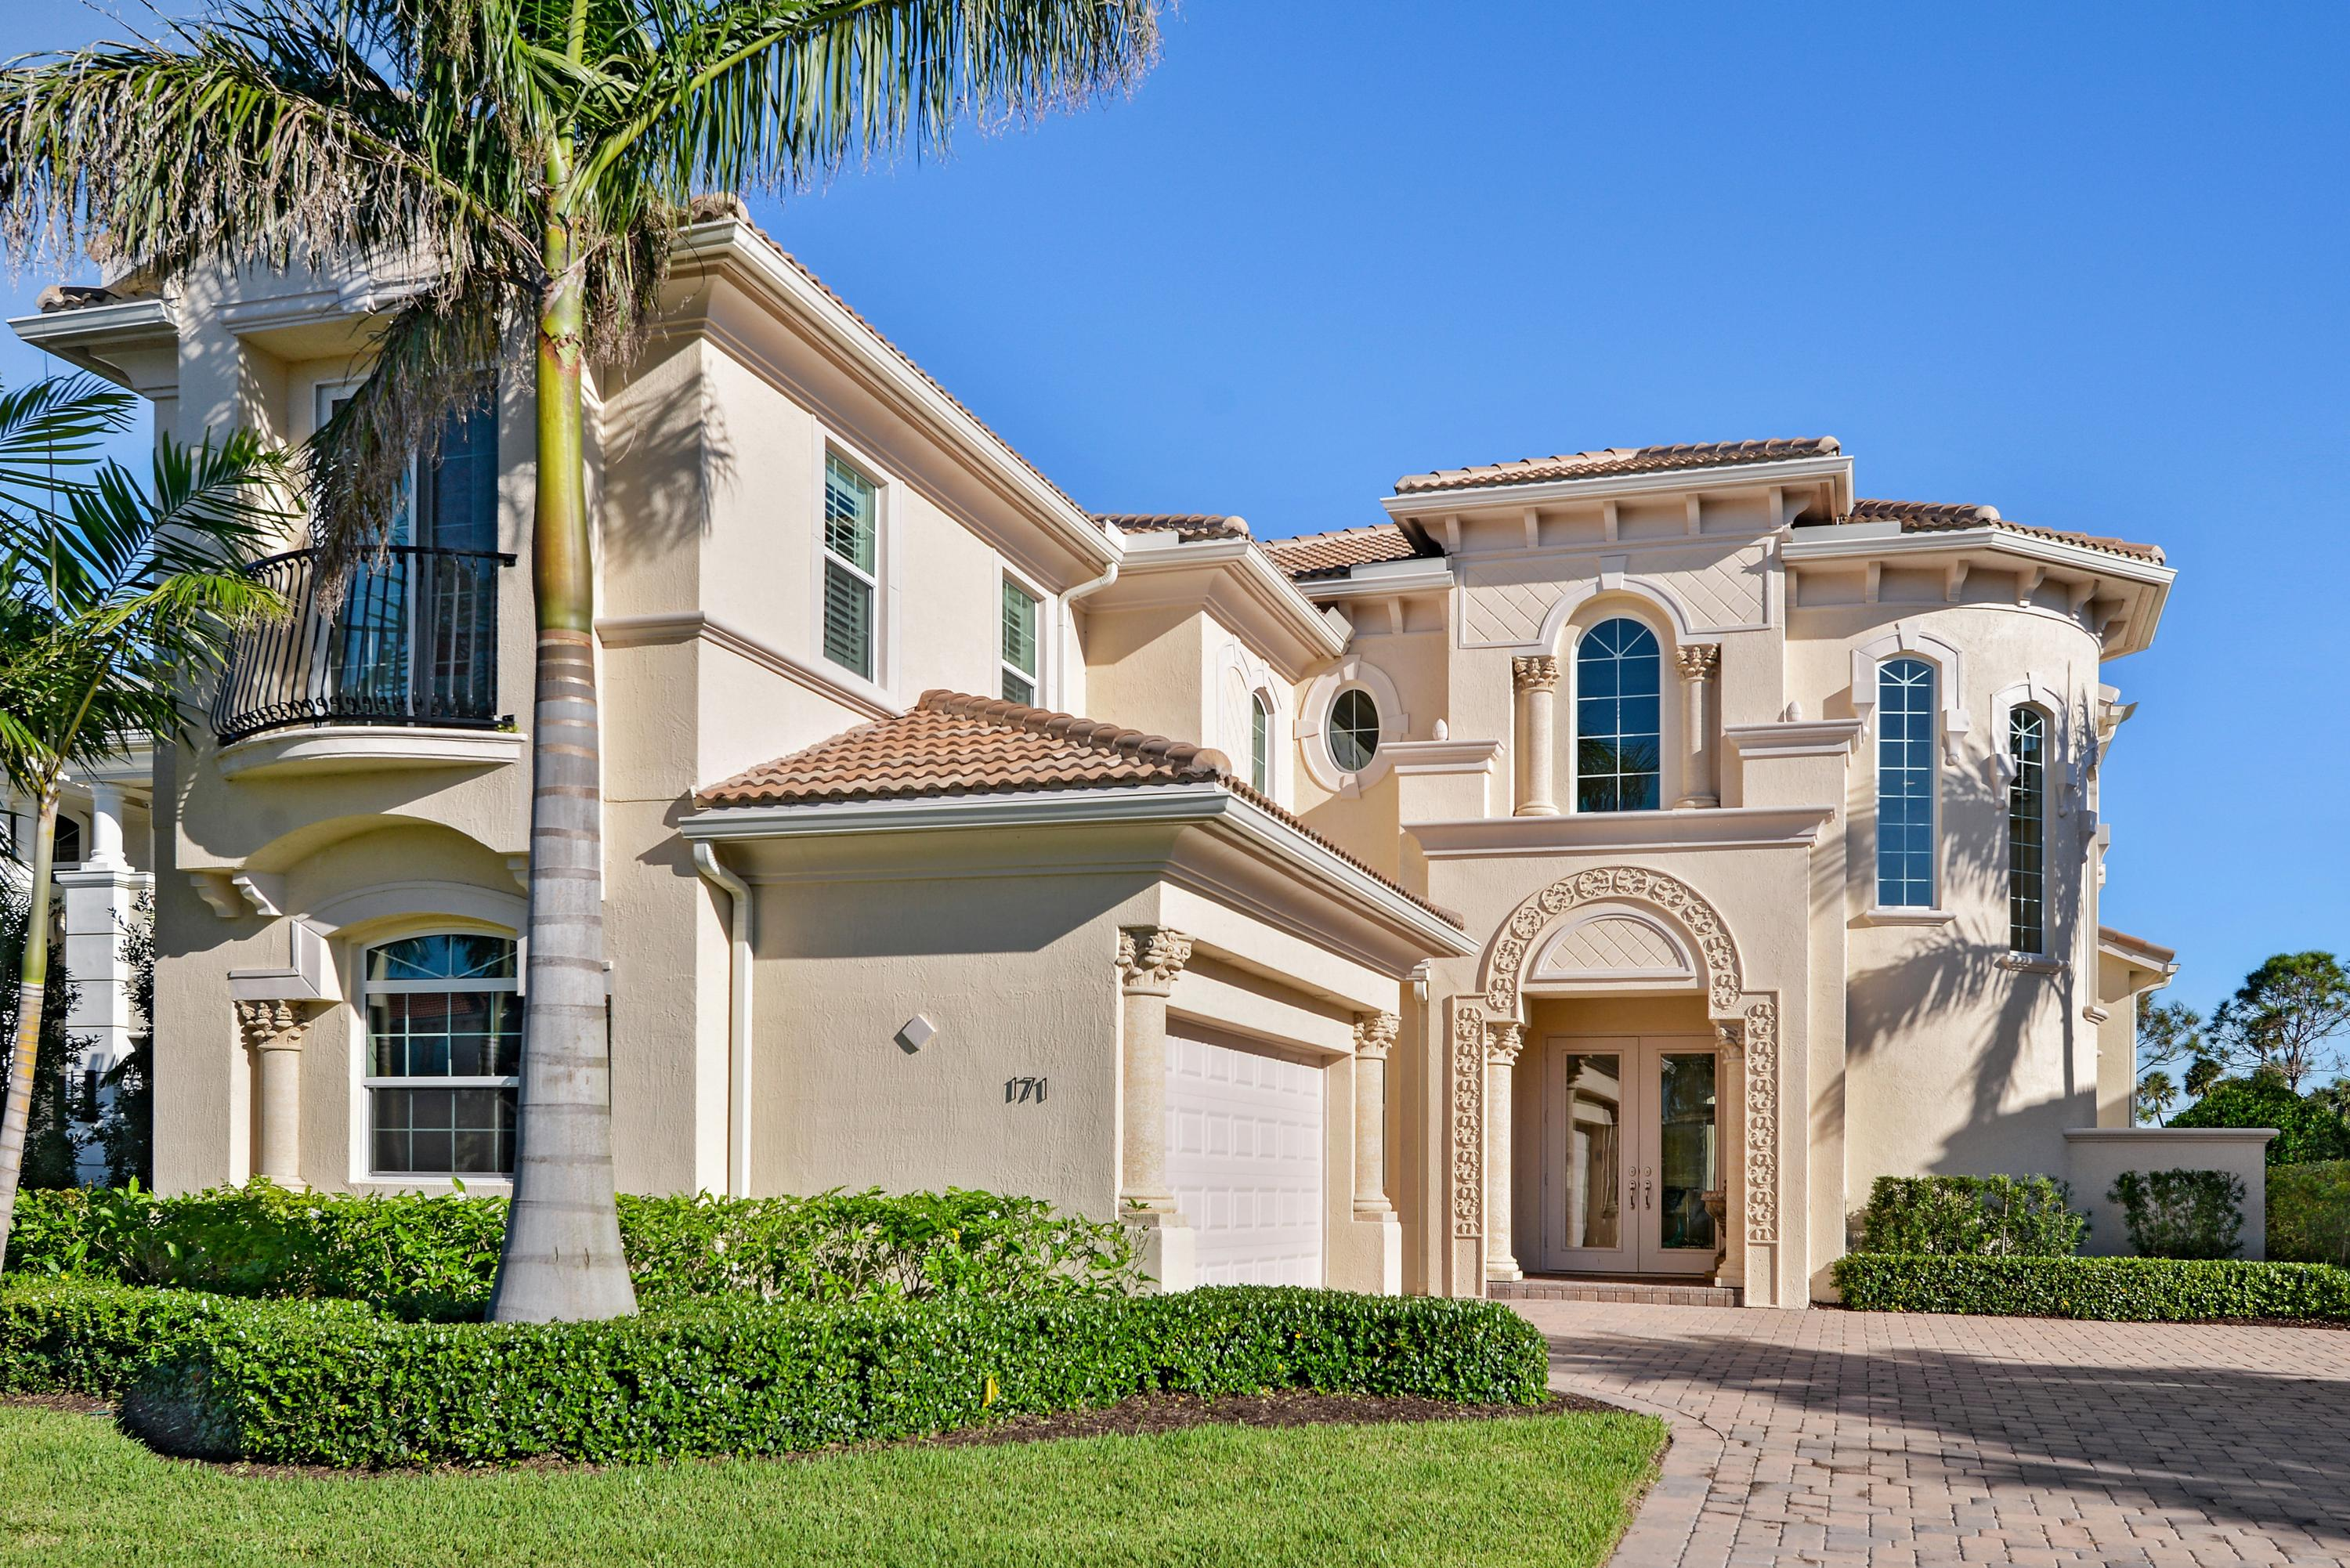 Home for sale in Jupiter Country Club Jupiter Florida